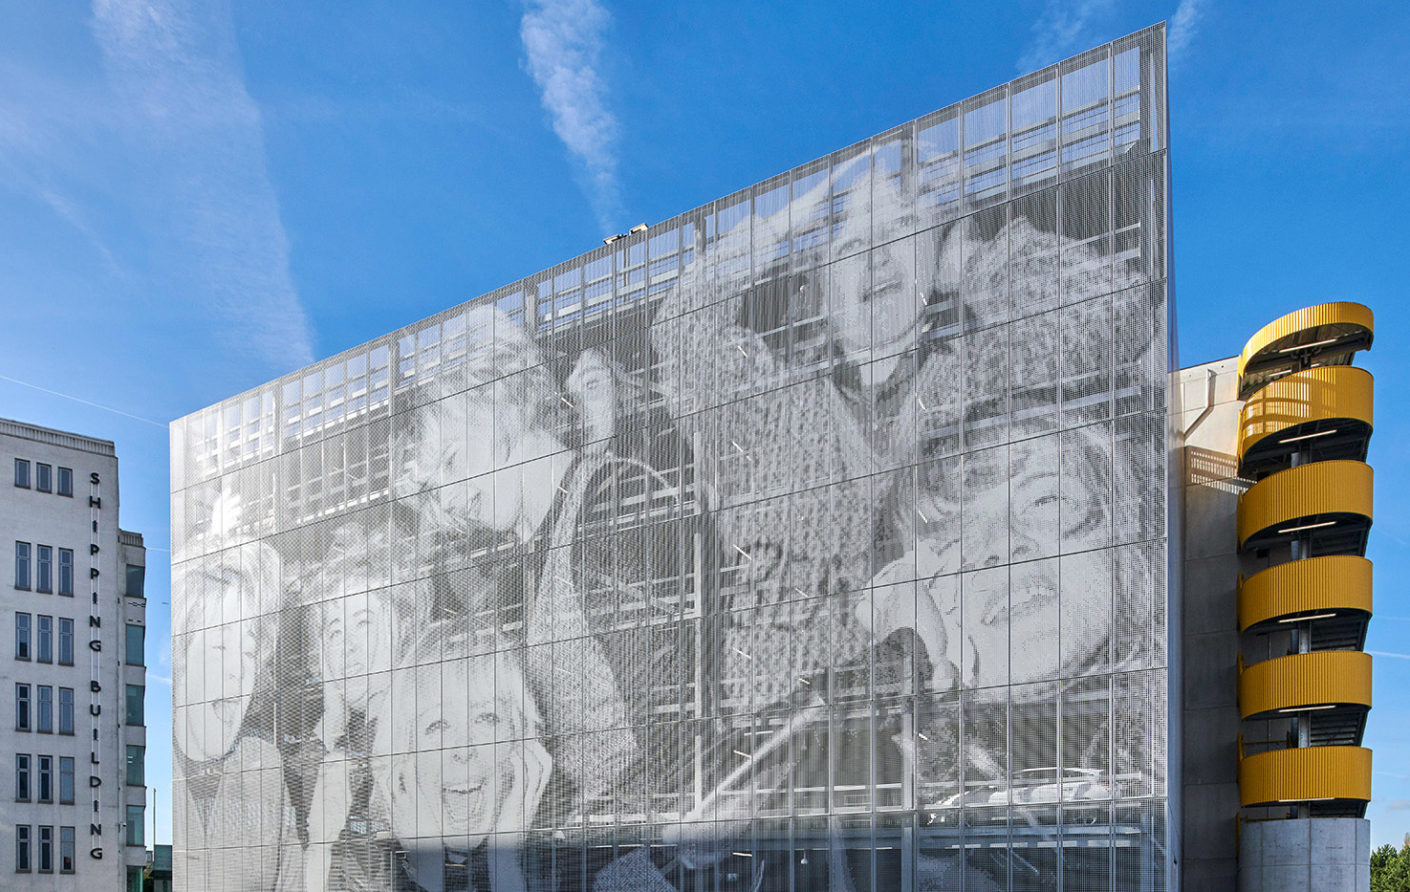 The façade of the multi-story carpark has been clad in 3,500 square meters of perforated metal courtesy of RMIG.